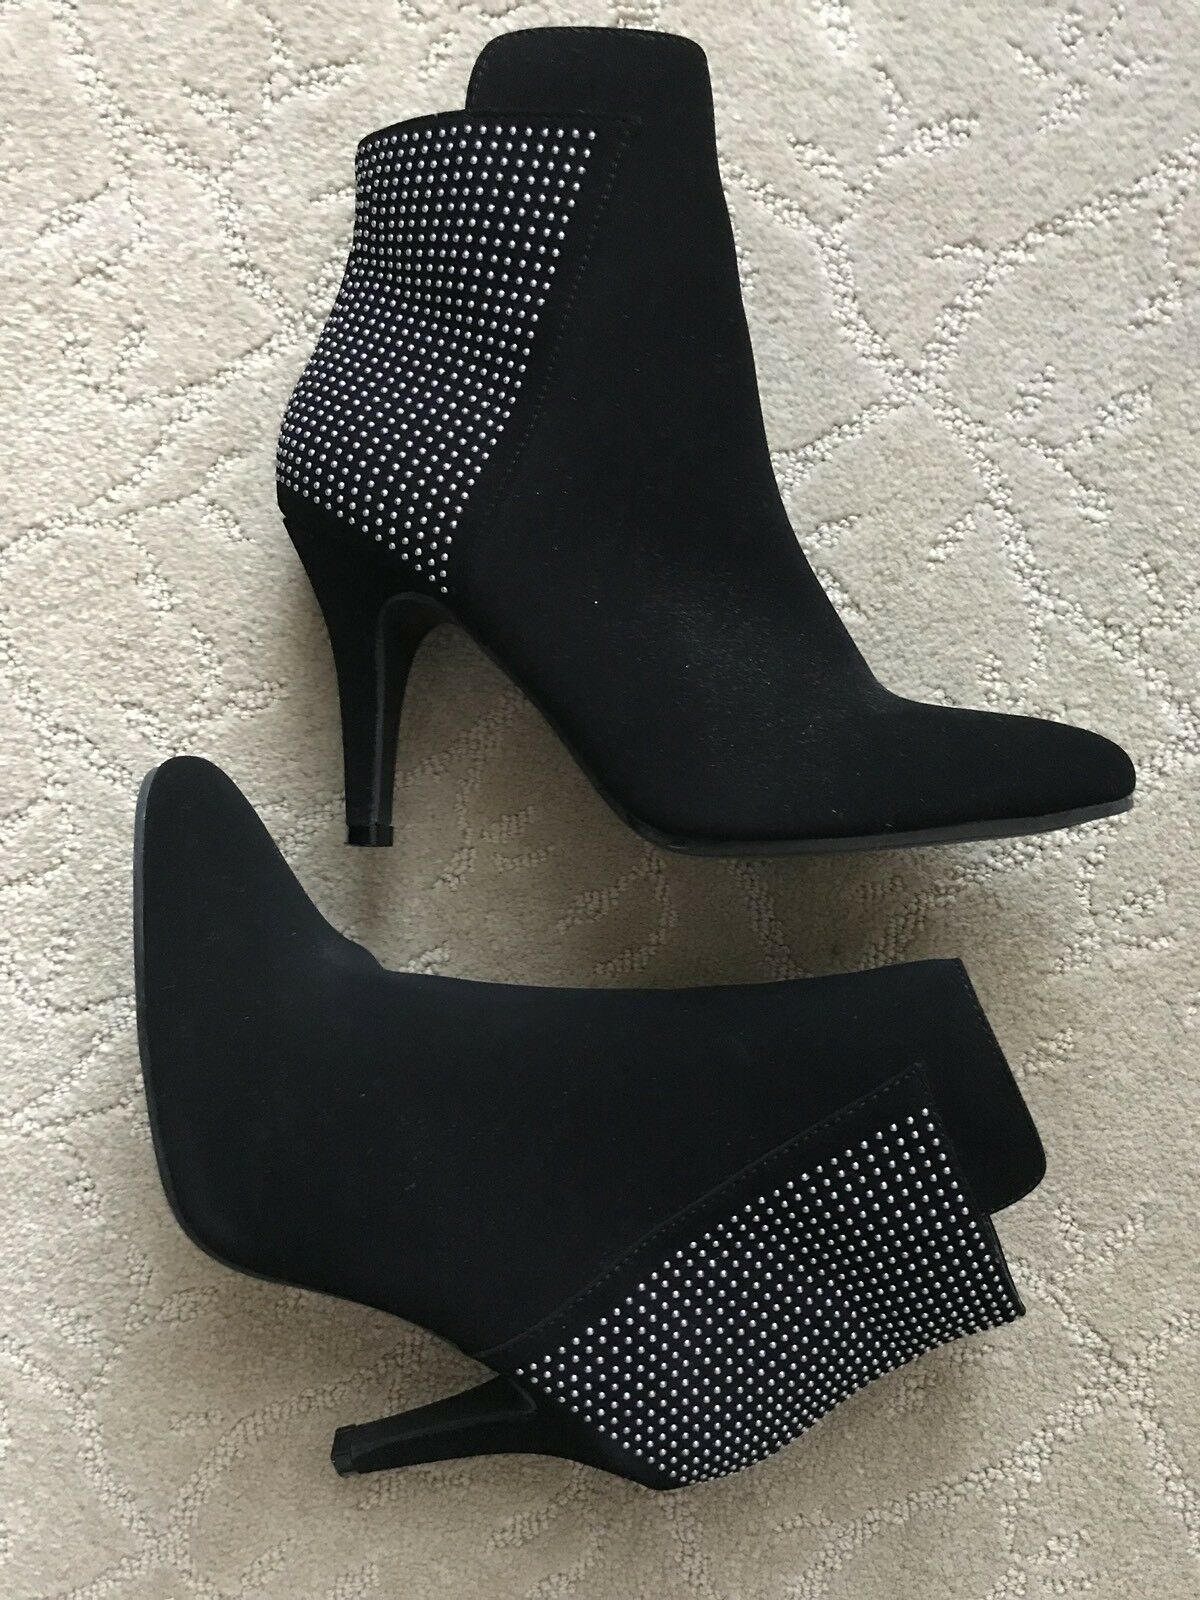 ME TOO Black Ankle Boots Booties Shoes Size 7.5 Emily Suede Rhinestones Blinged